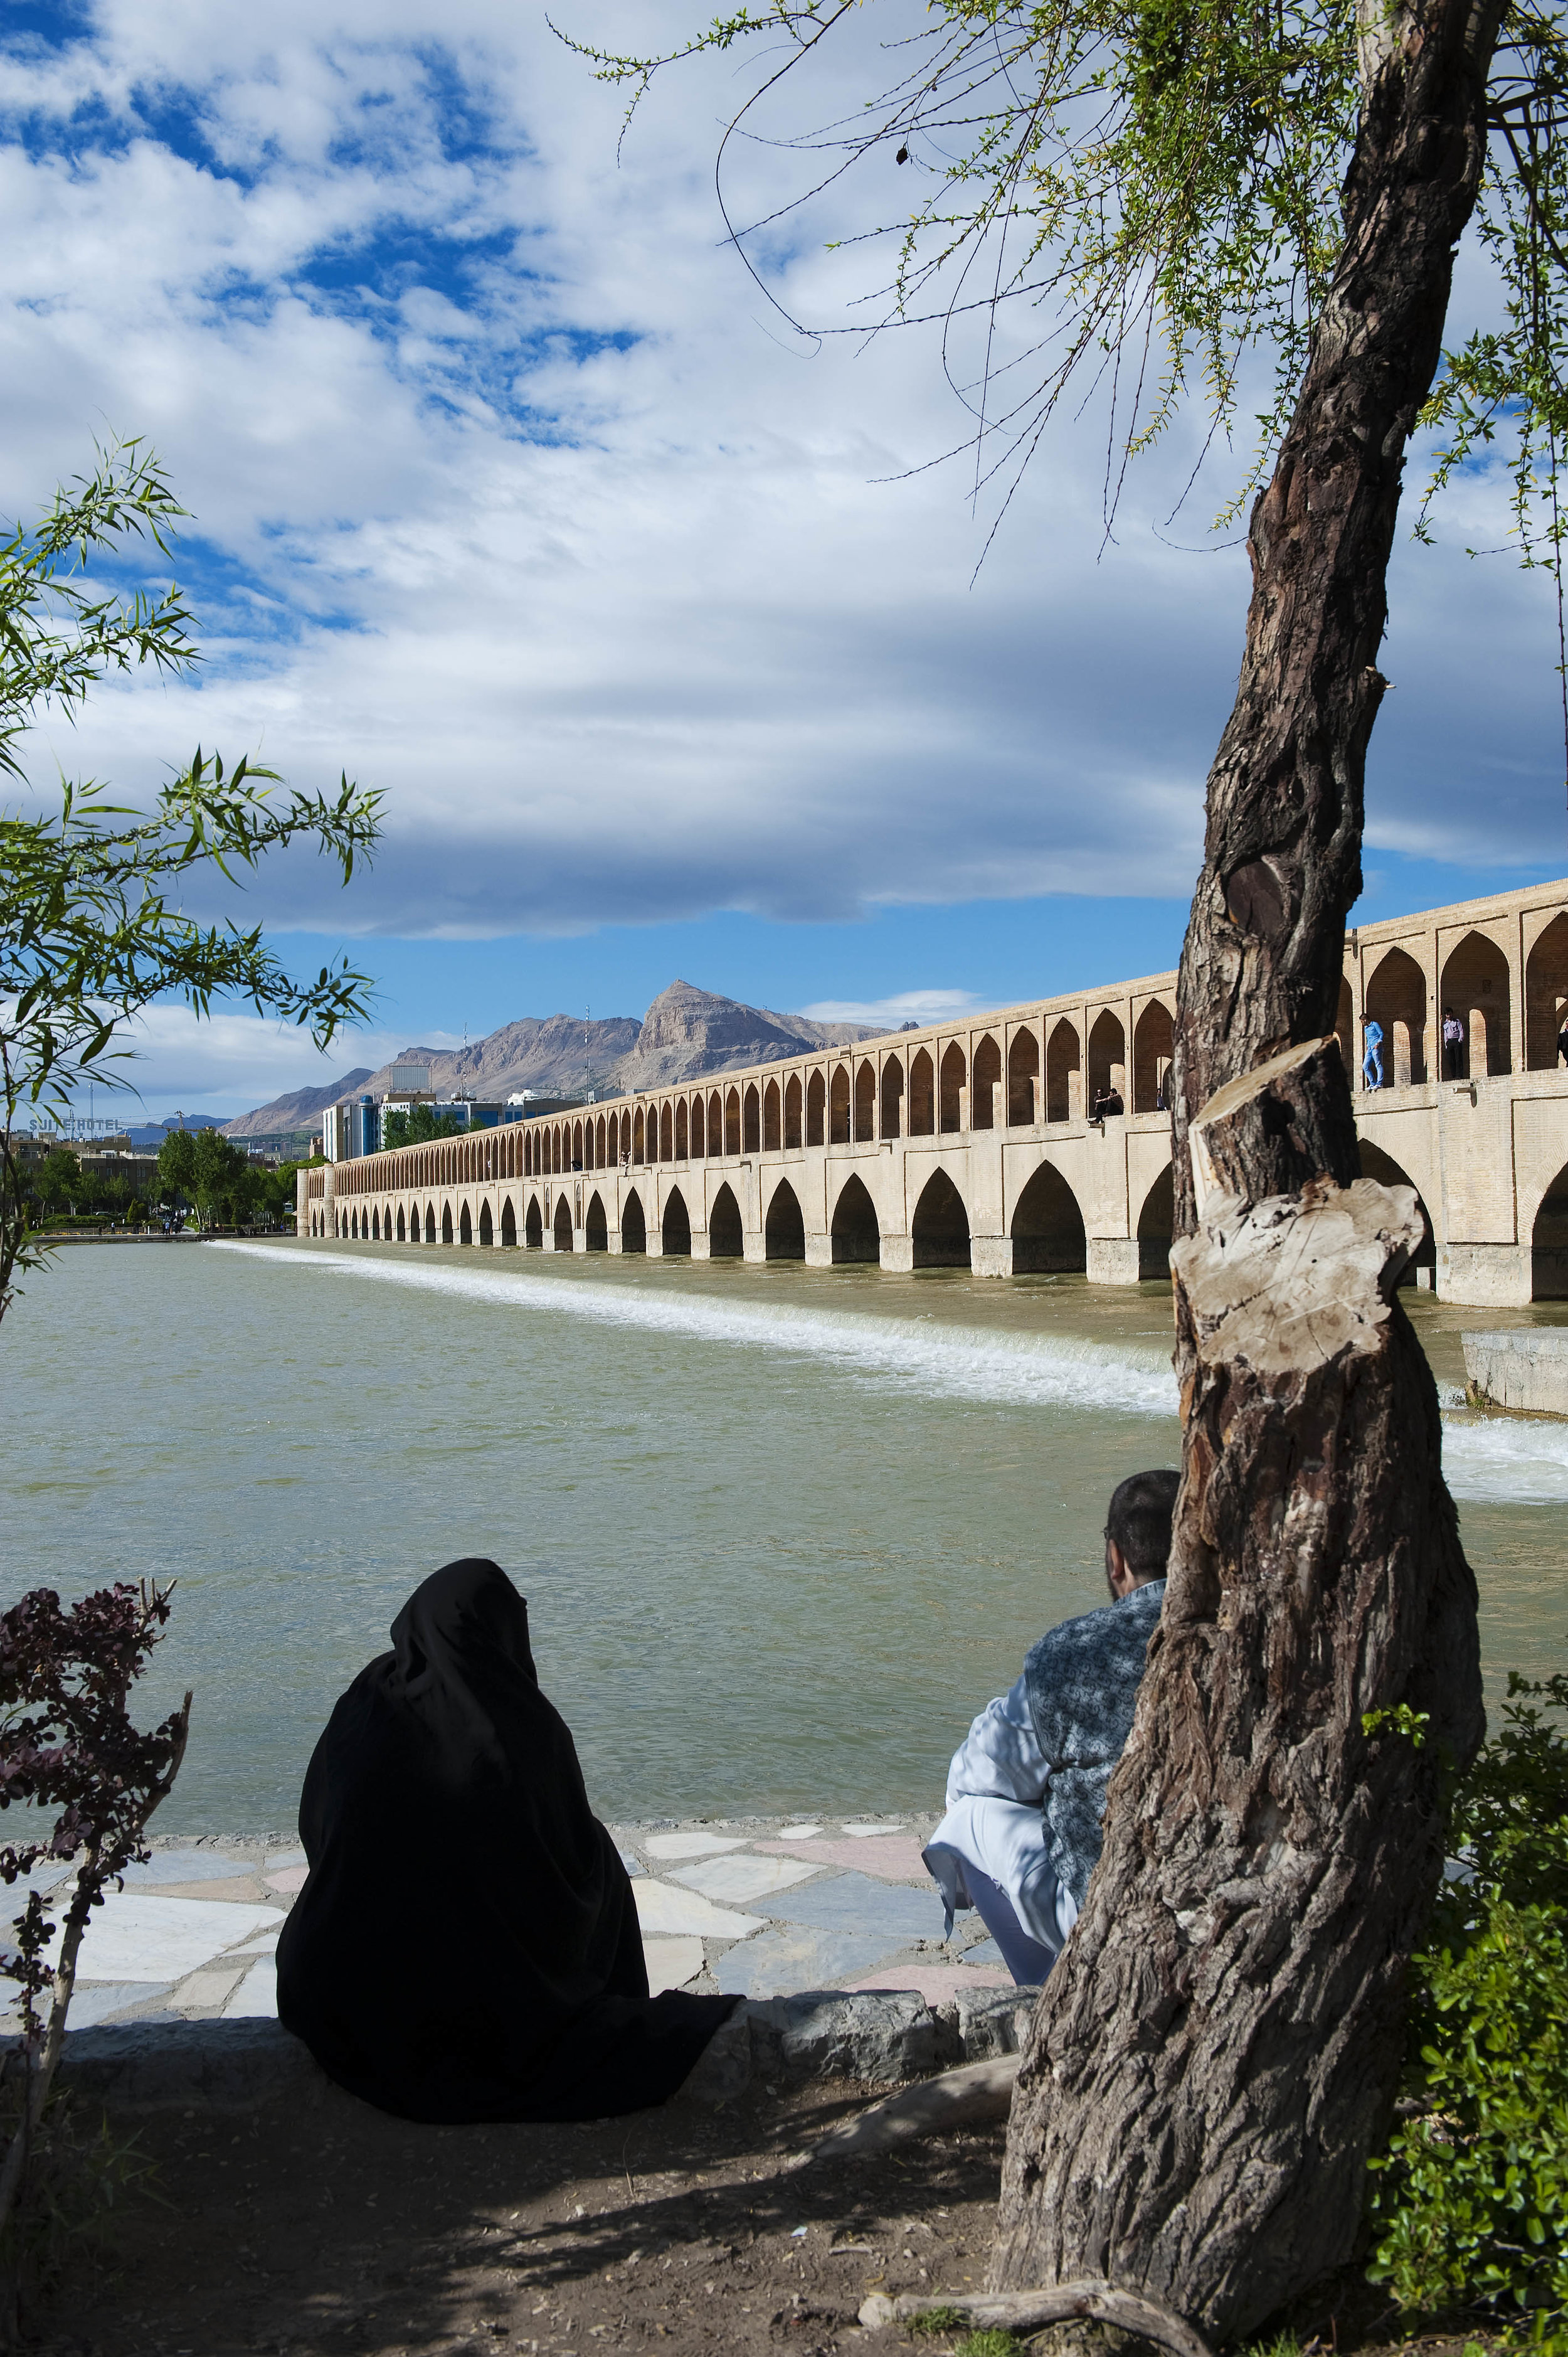 Pol Khajoo (33 bridges) in Isfahan